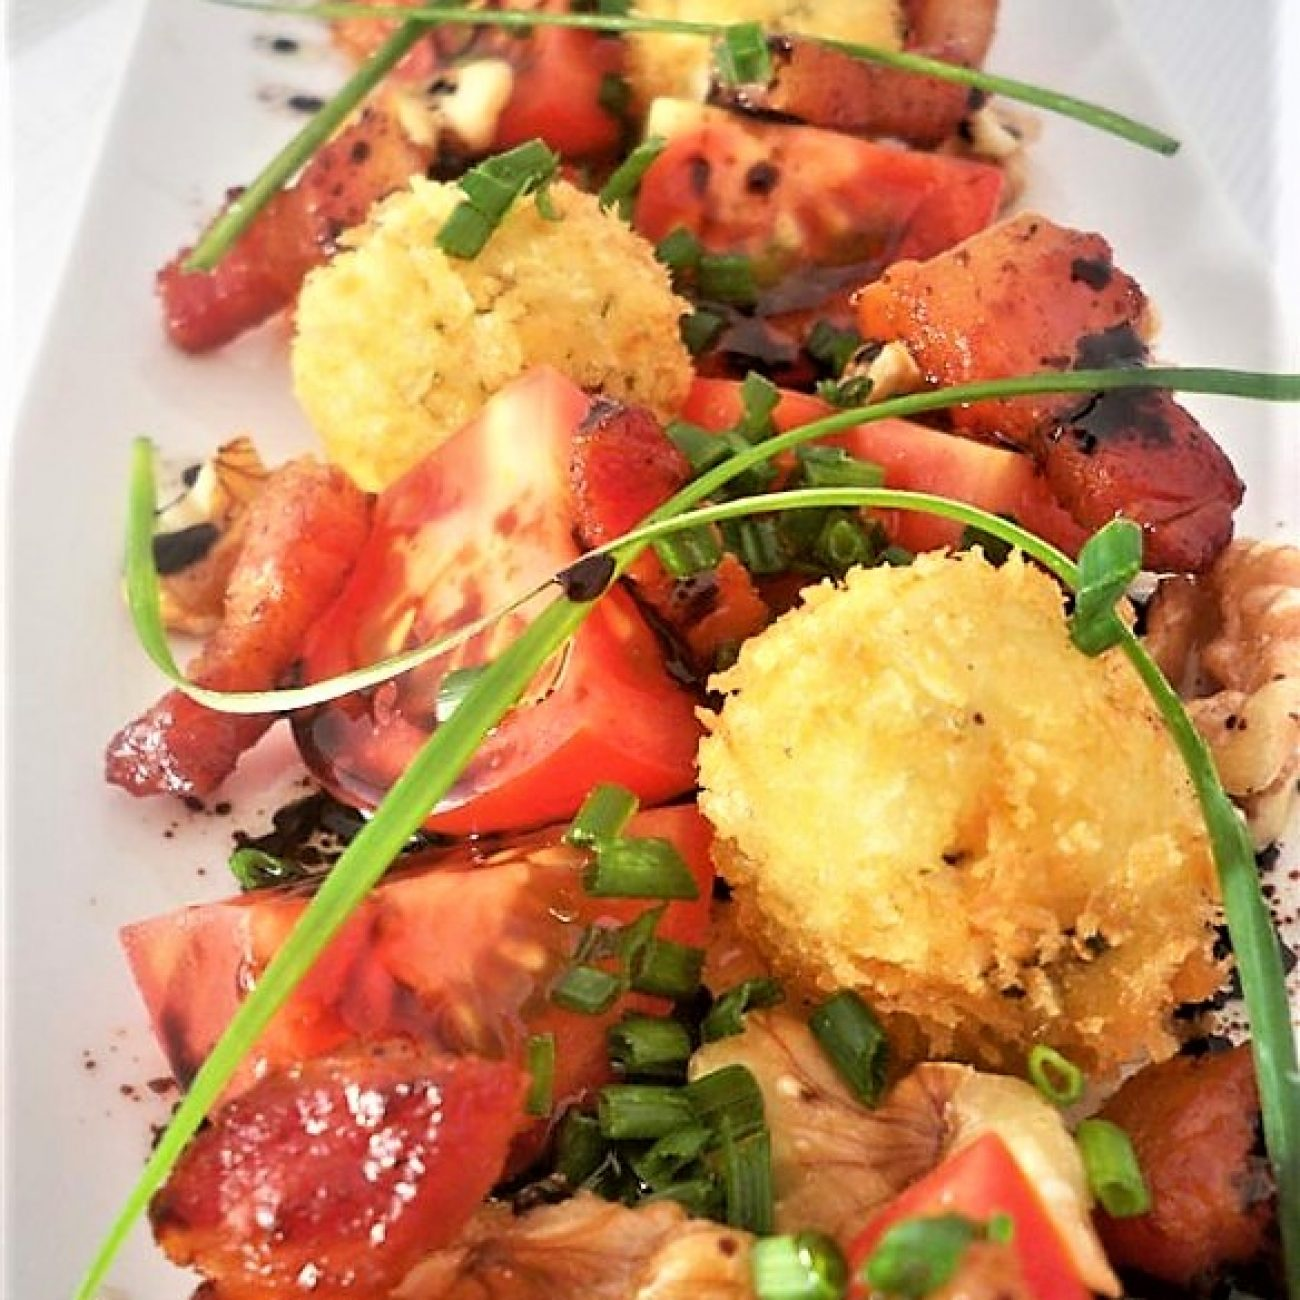 Tomato Salad with goat cheese, pancetta and walnuts